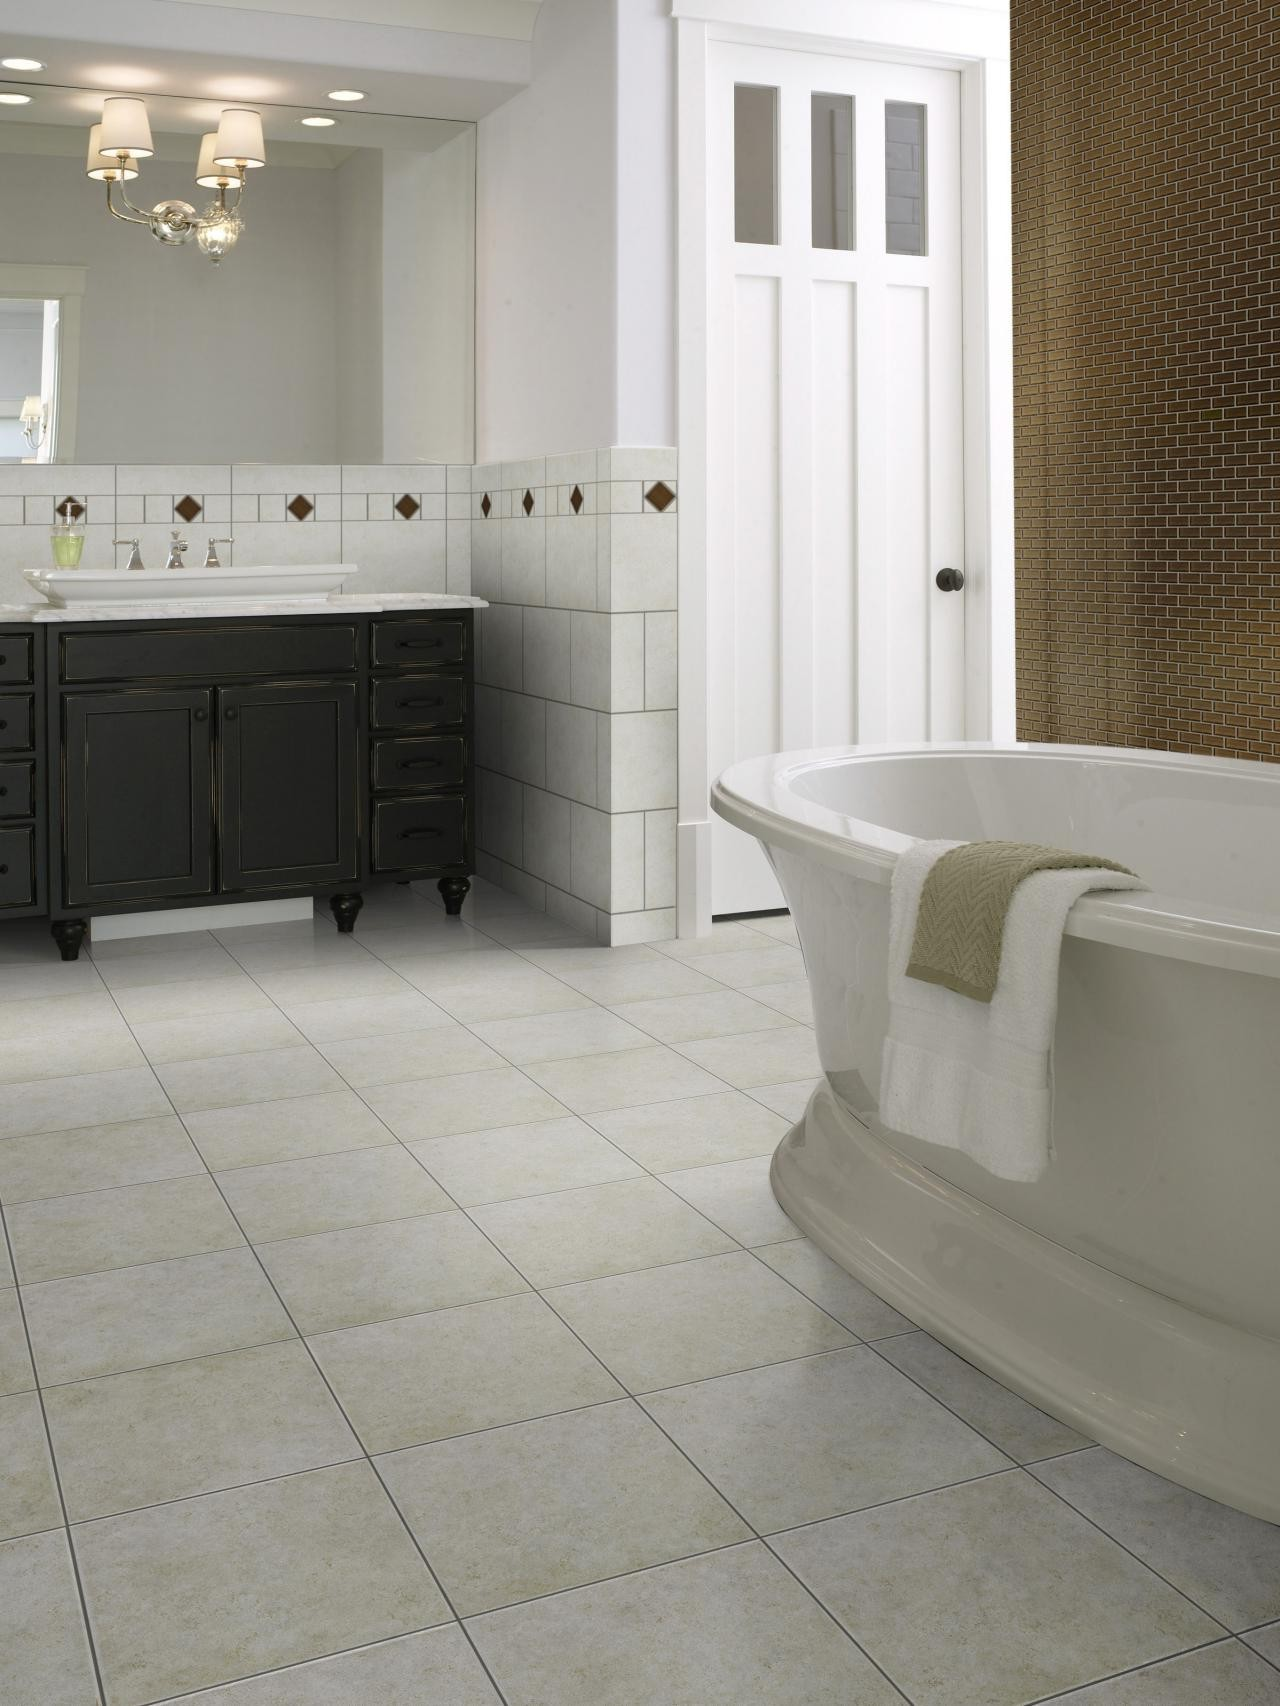 How To Install Ceramic Tile In Bathroom Wall